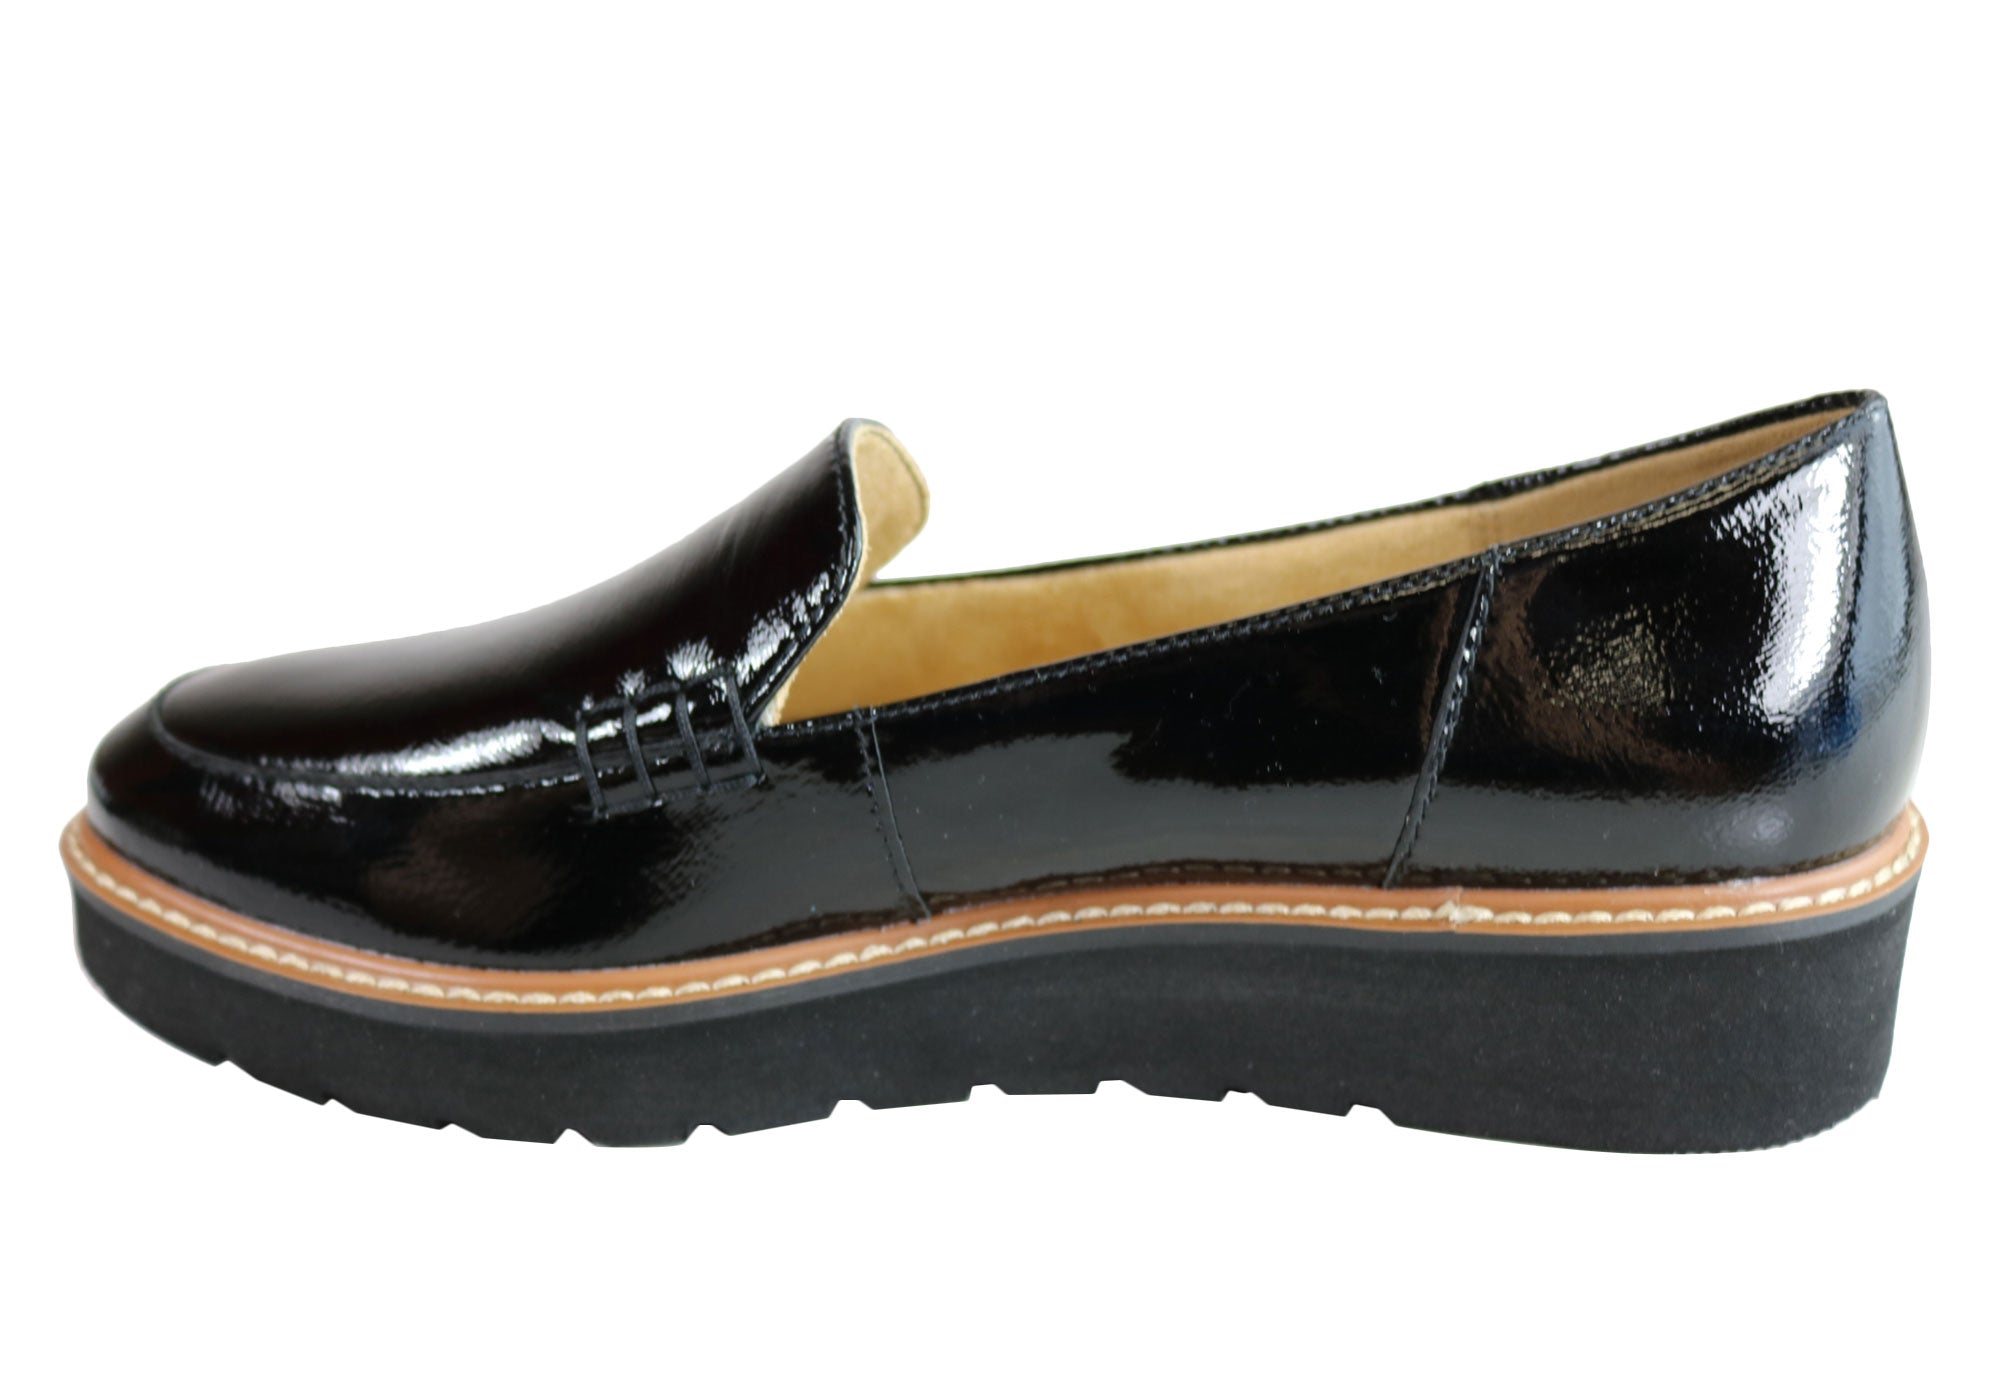 981033faa50 Home Naturalizer Andie Womens Comfortable Platform Patent Loafer Shoes. Black  Patent  Black Patent ...